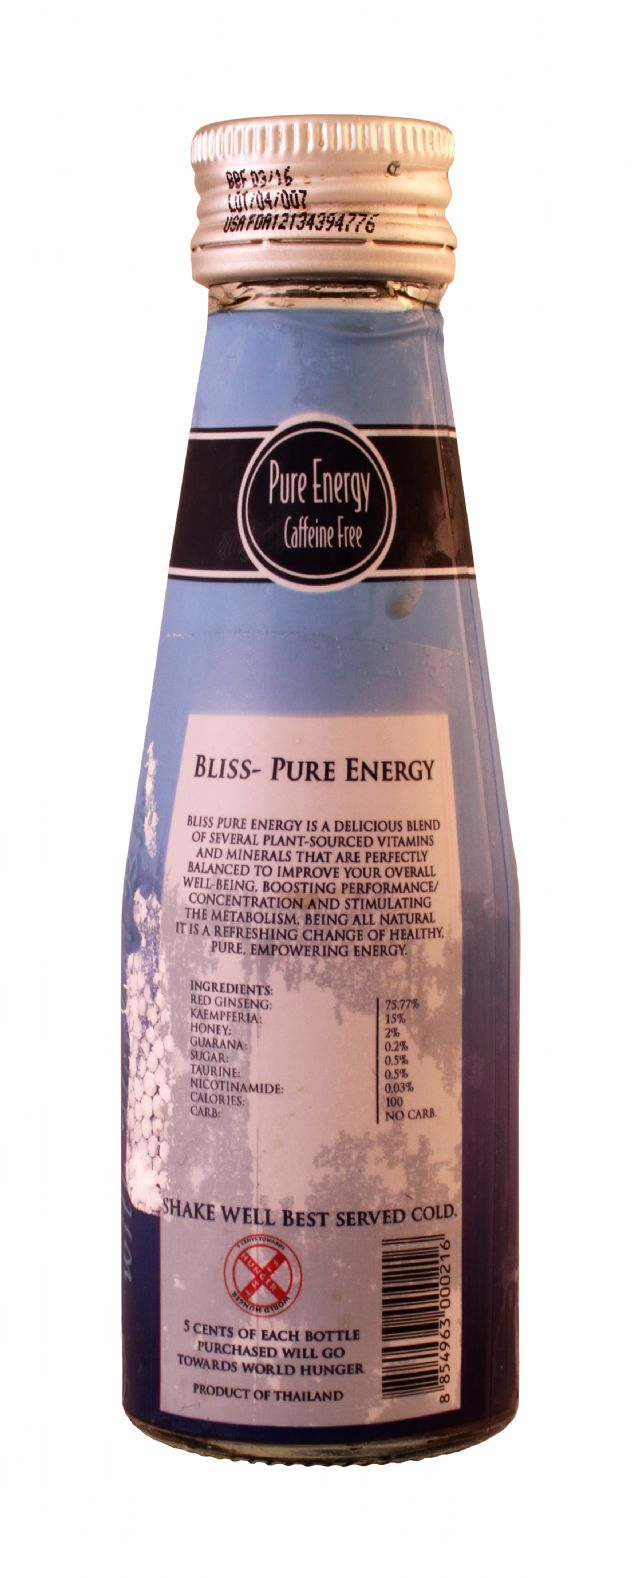 Bliss Natural Energy Drink: Bliss CaffeineFree Facts